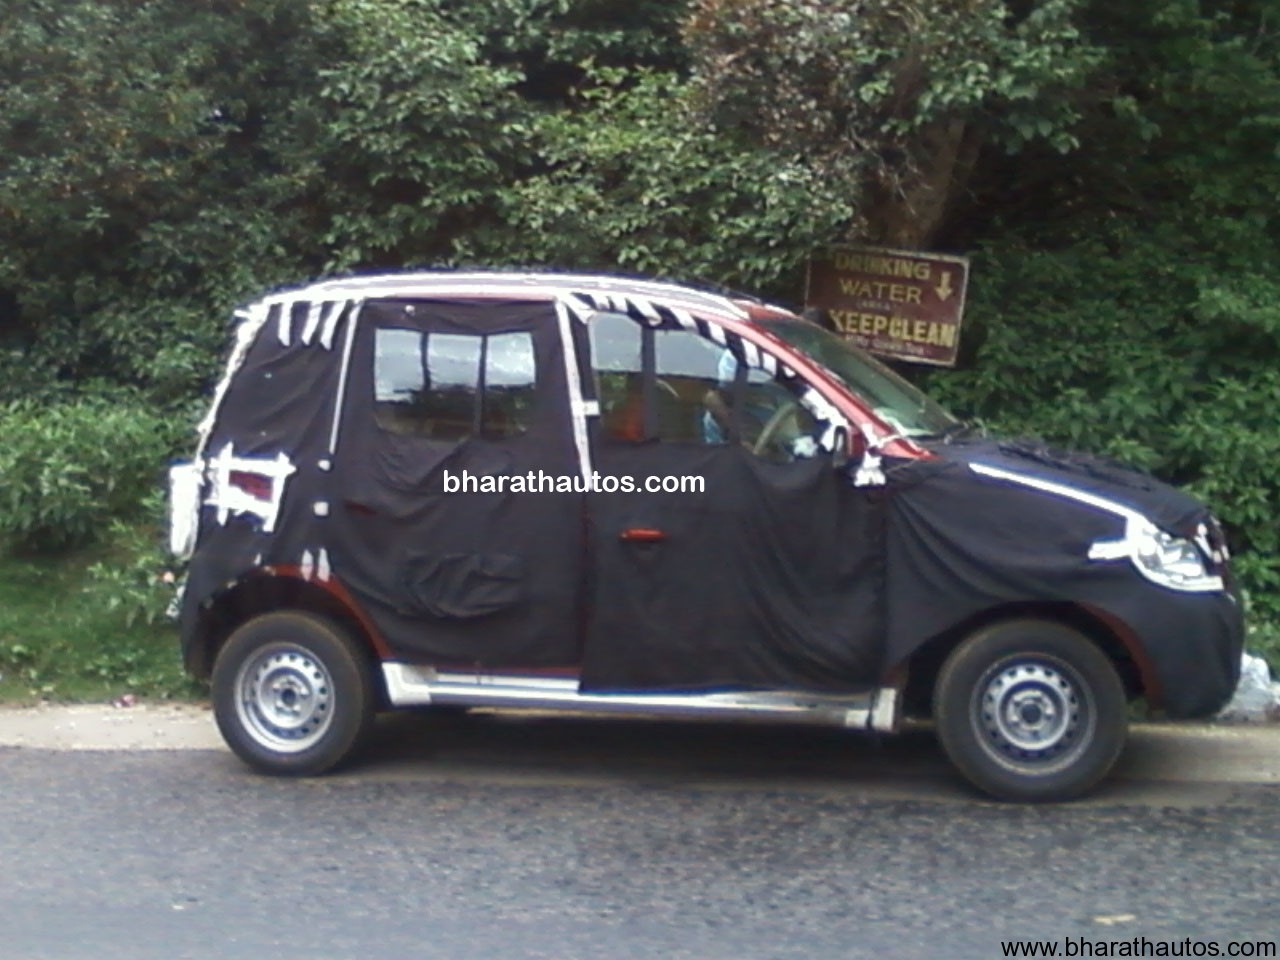 Mahindra To Launch A Small Car Codenamed Brl By 2013 14